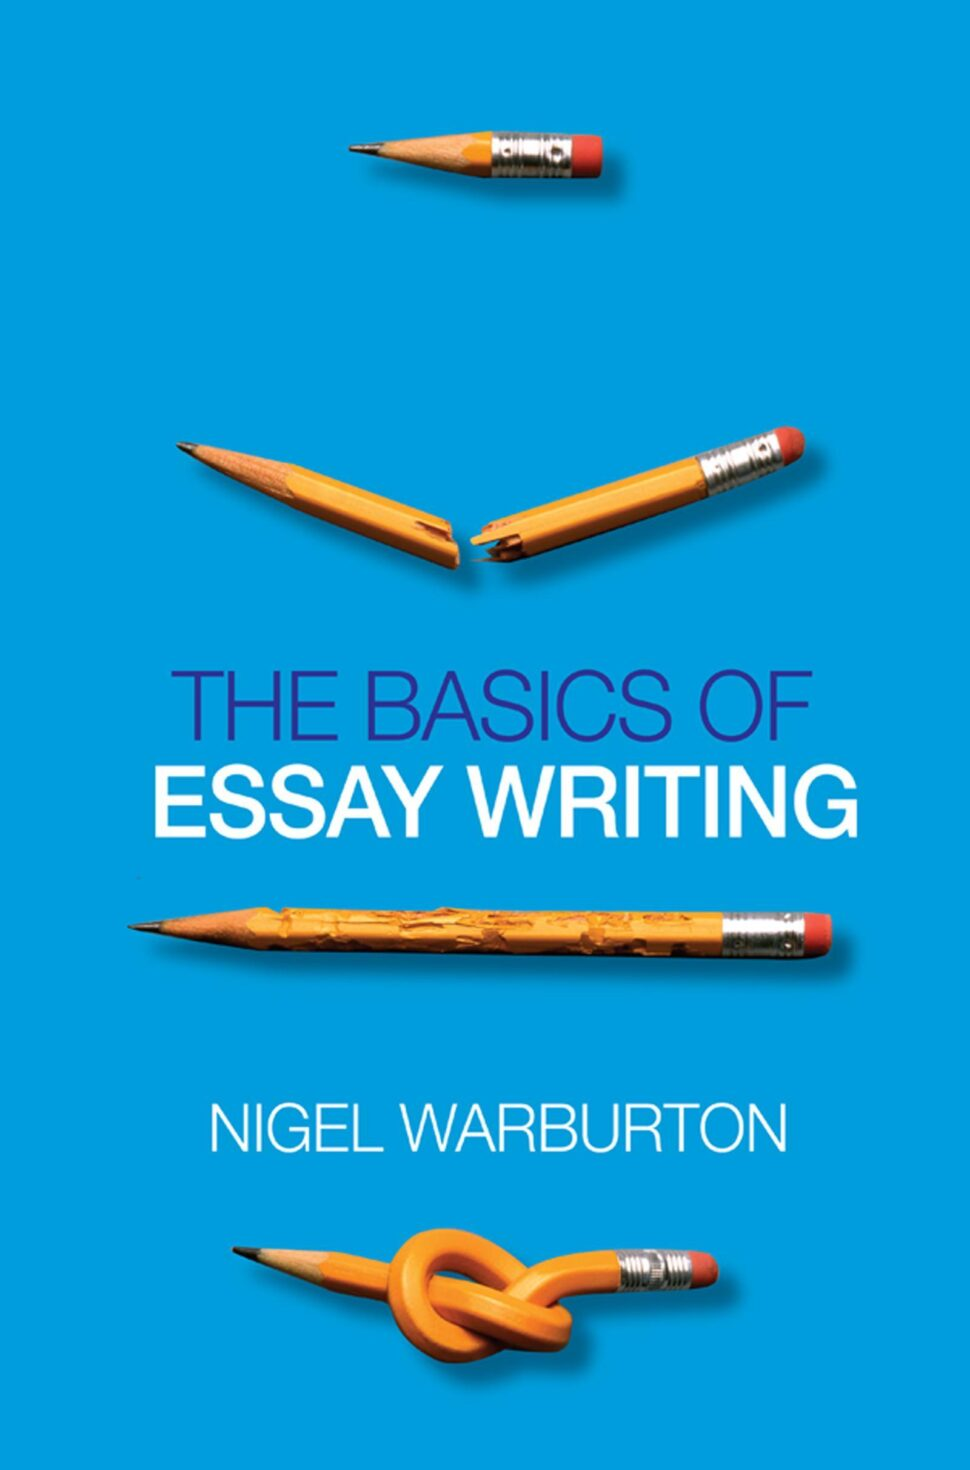 Large Size of The Basics Of Essay Writing Ebook Jetzt Bei Weltbild Pay Free Editor Paper Rubric For